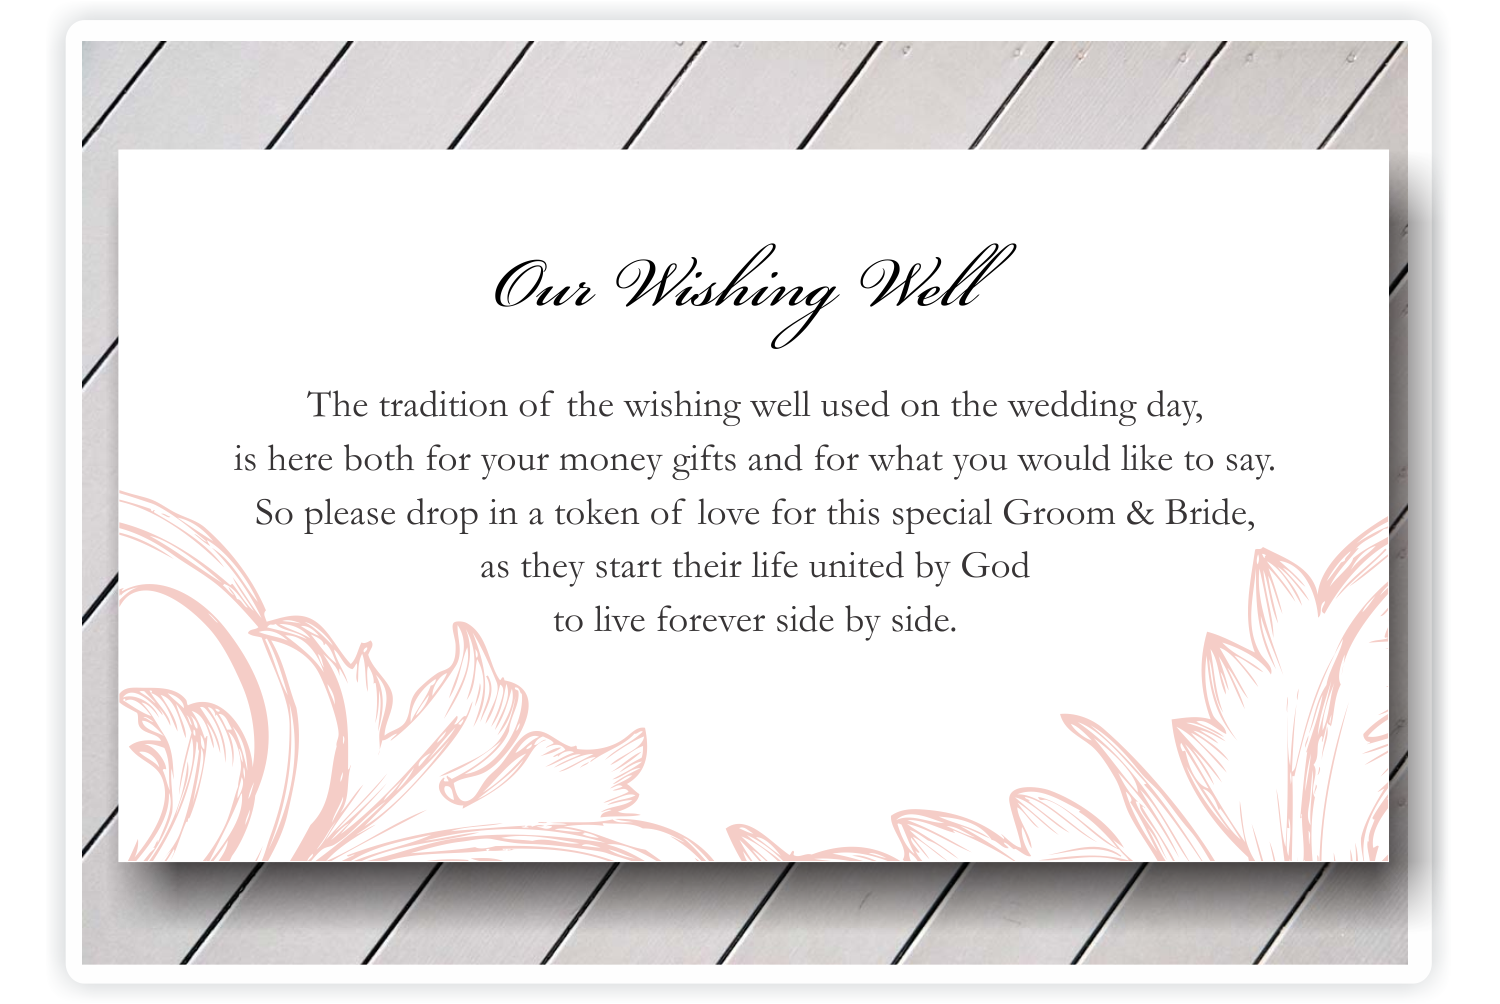 Poems For Wedding Invitations Asking For Money: Wedding Invitation Inserts Asking For Money